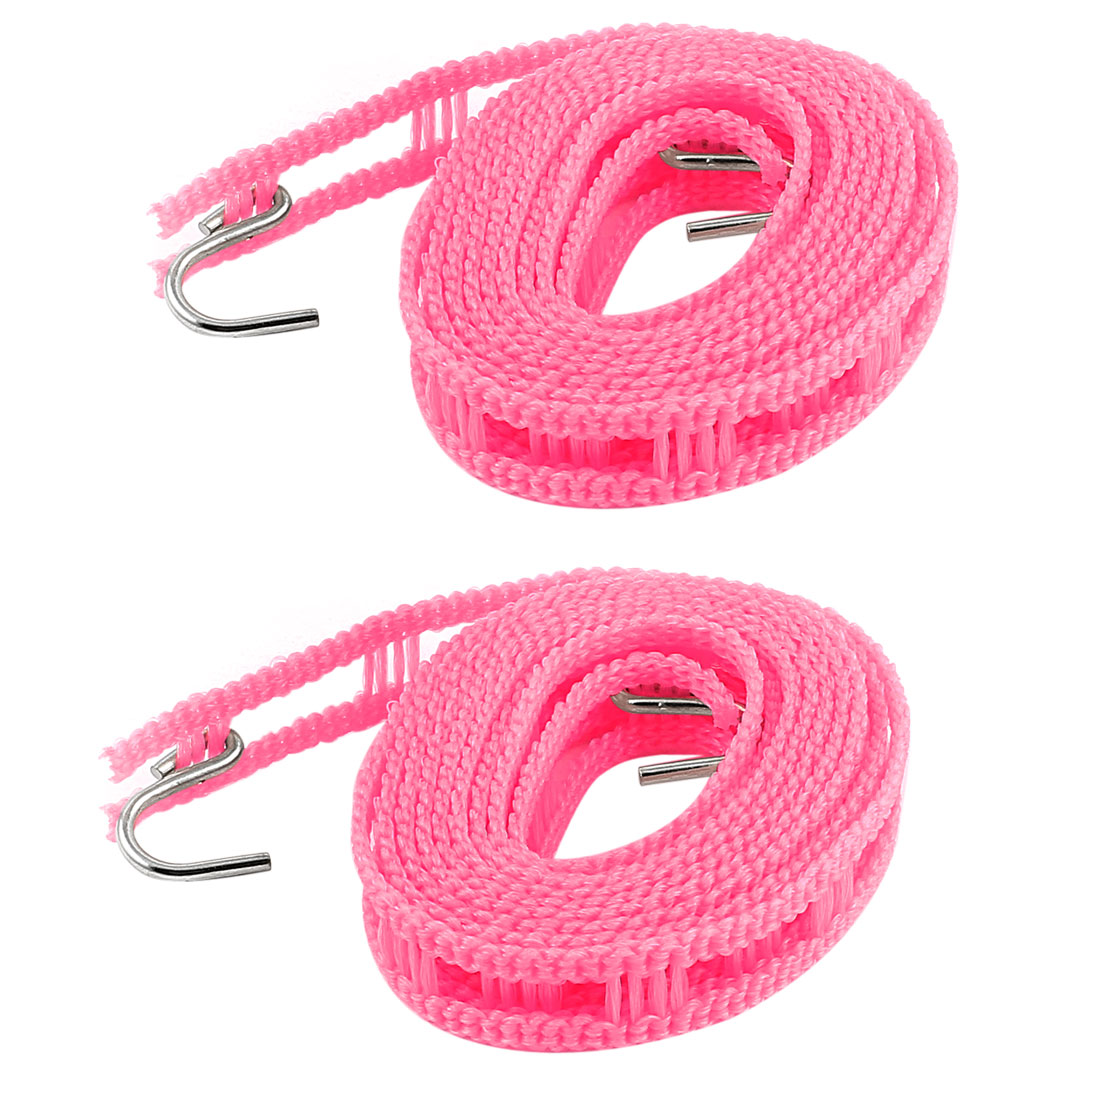 Camping Outdoor Laundry Plastic Clothesline Clothes Towel Hanger Line Rope w Hooks 2M Pink 2pcs